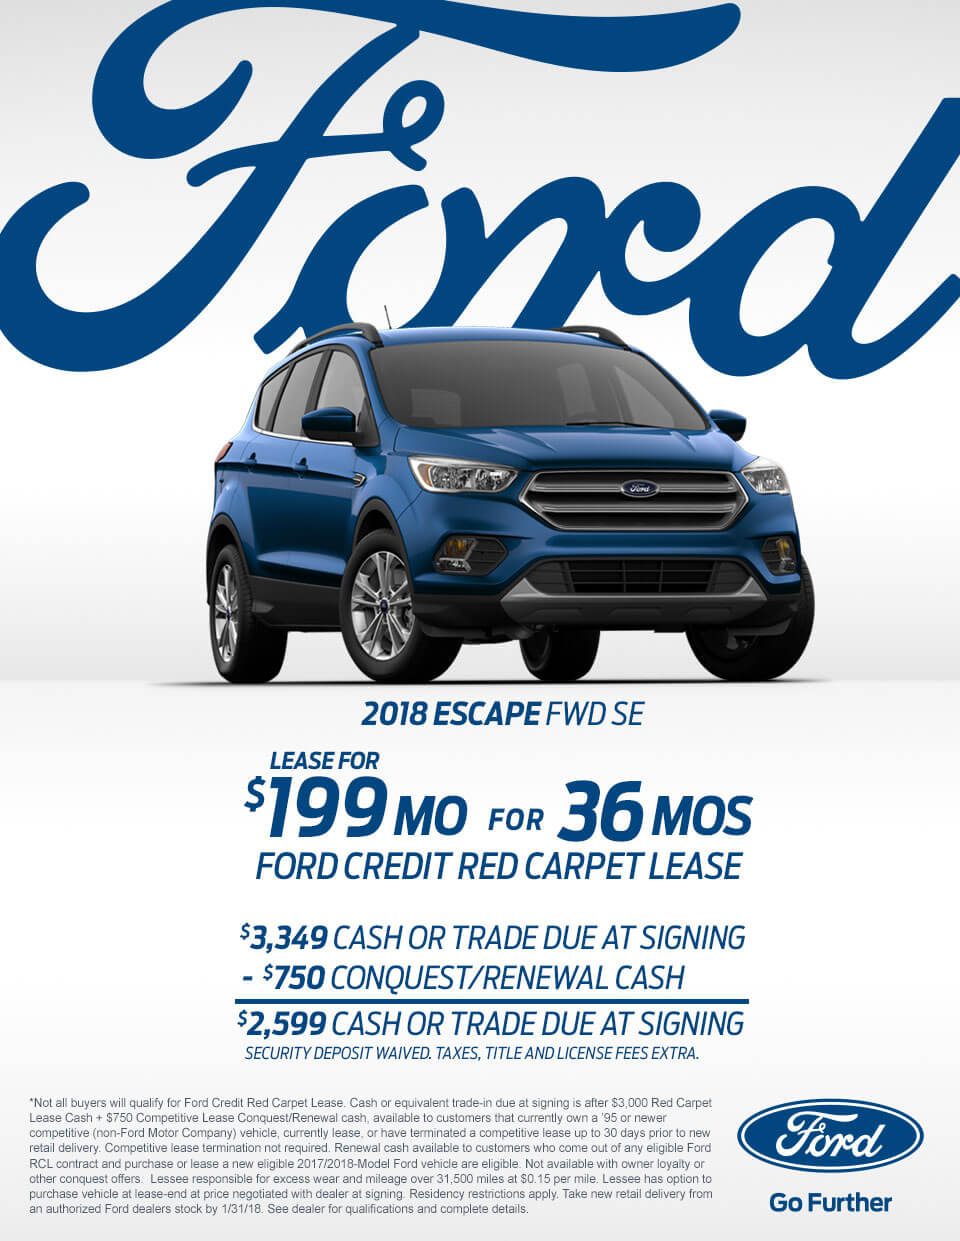 Ford Credit Red Carpet Lease Home Fatare